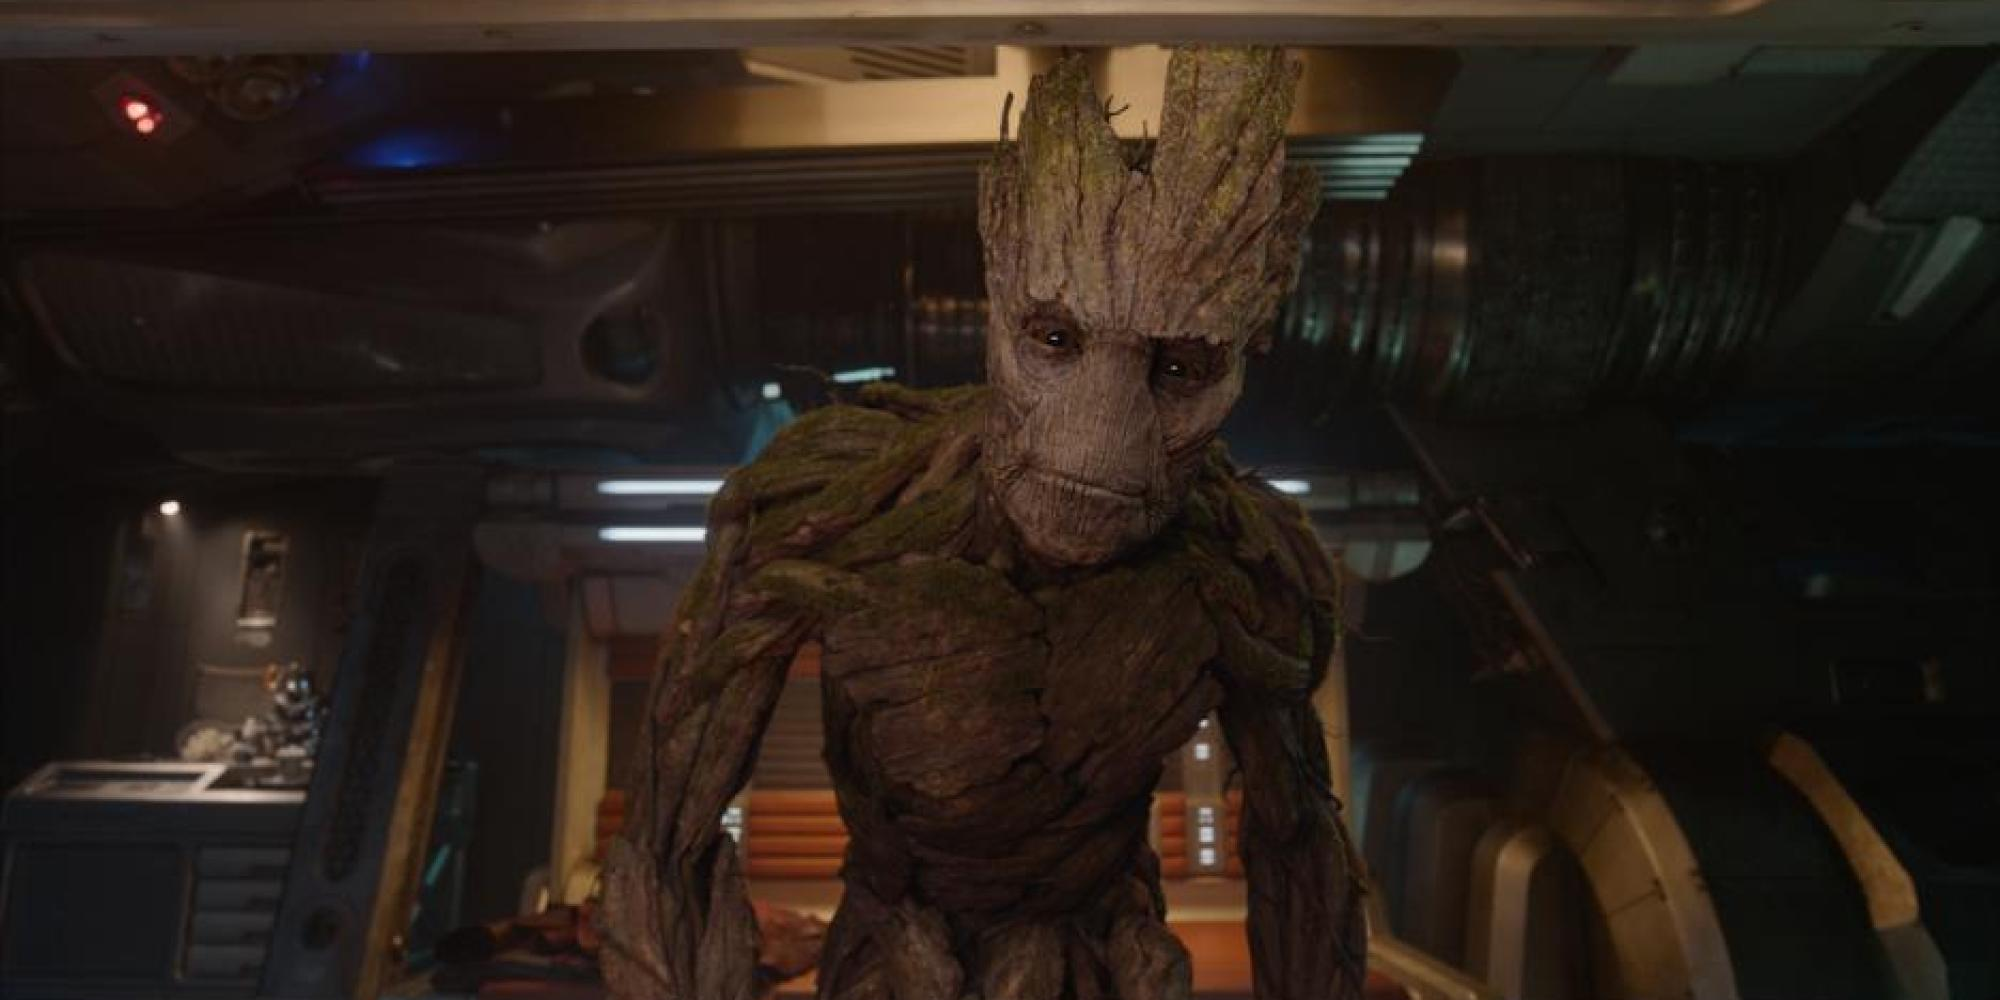 The best part of guardians of the galaxy is online now